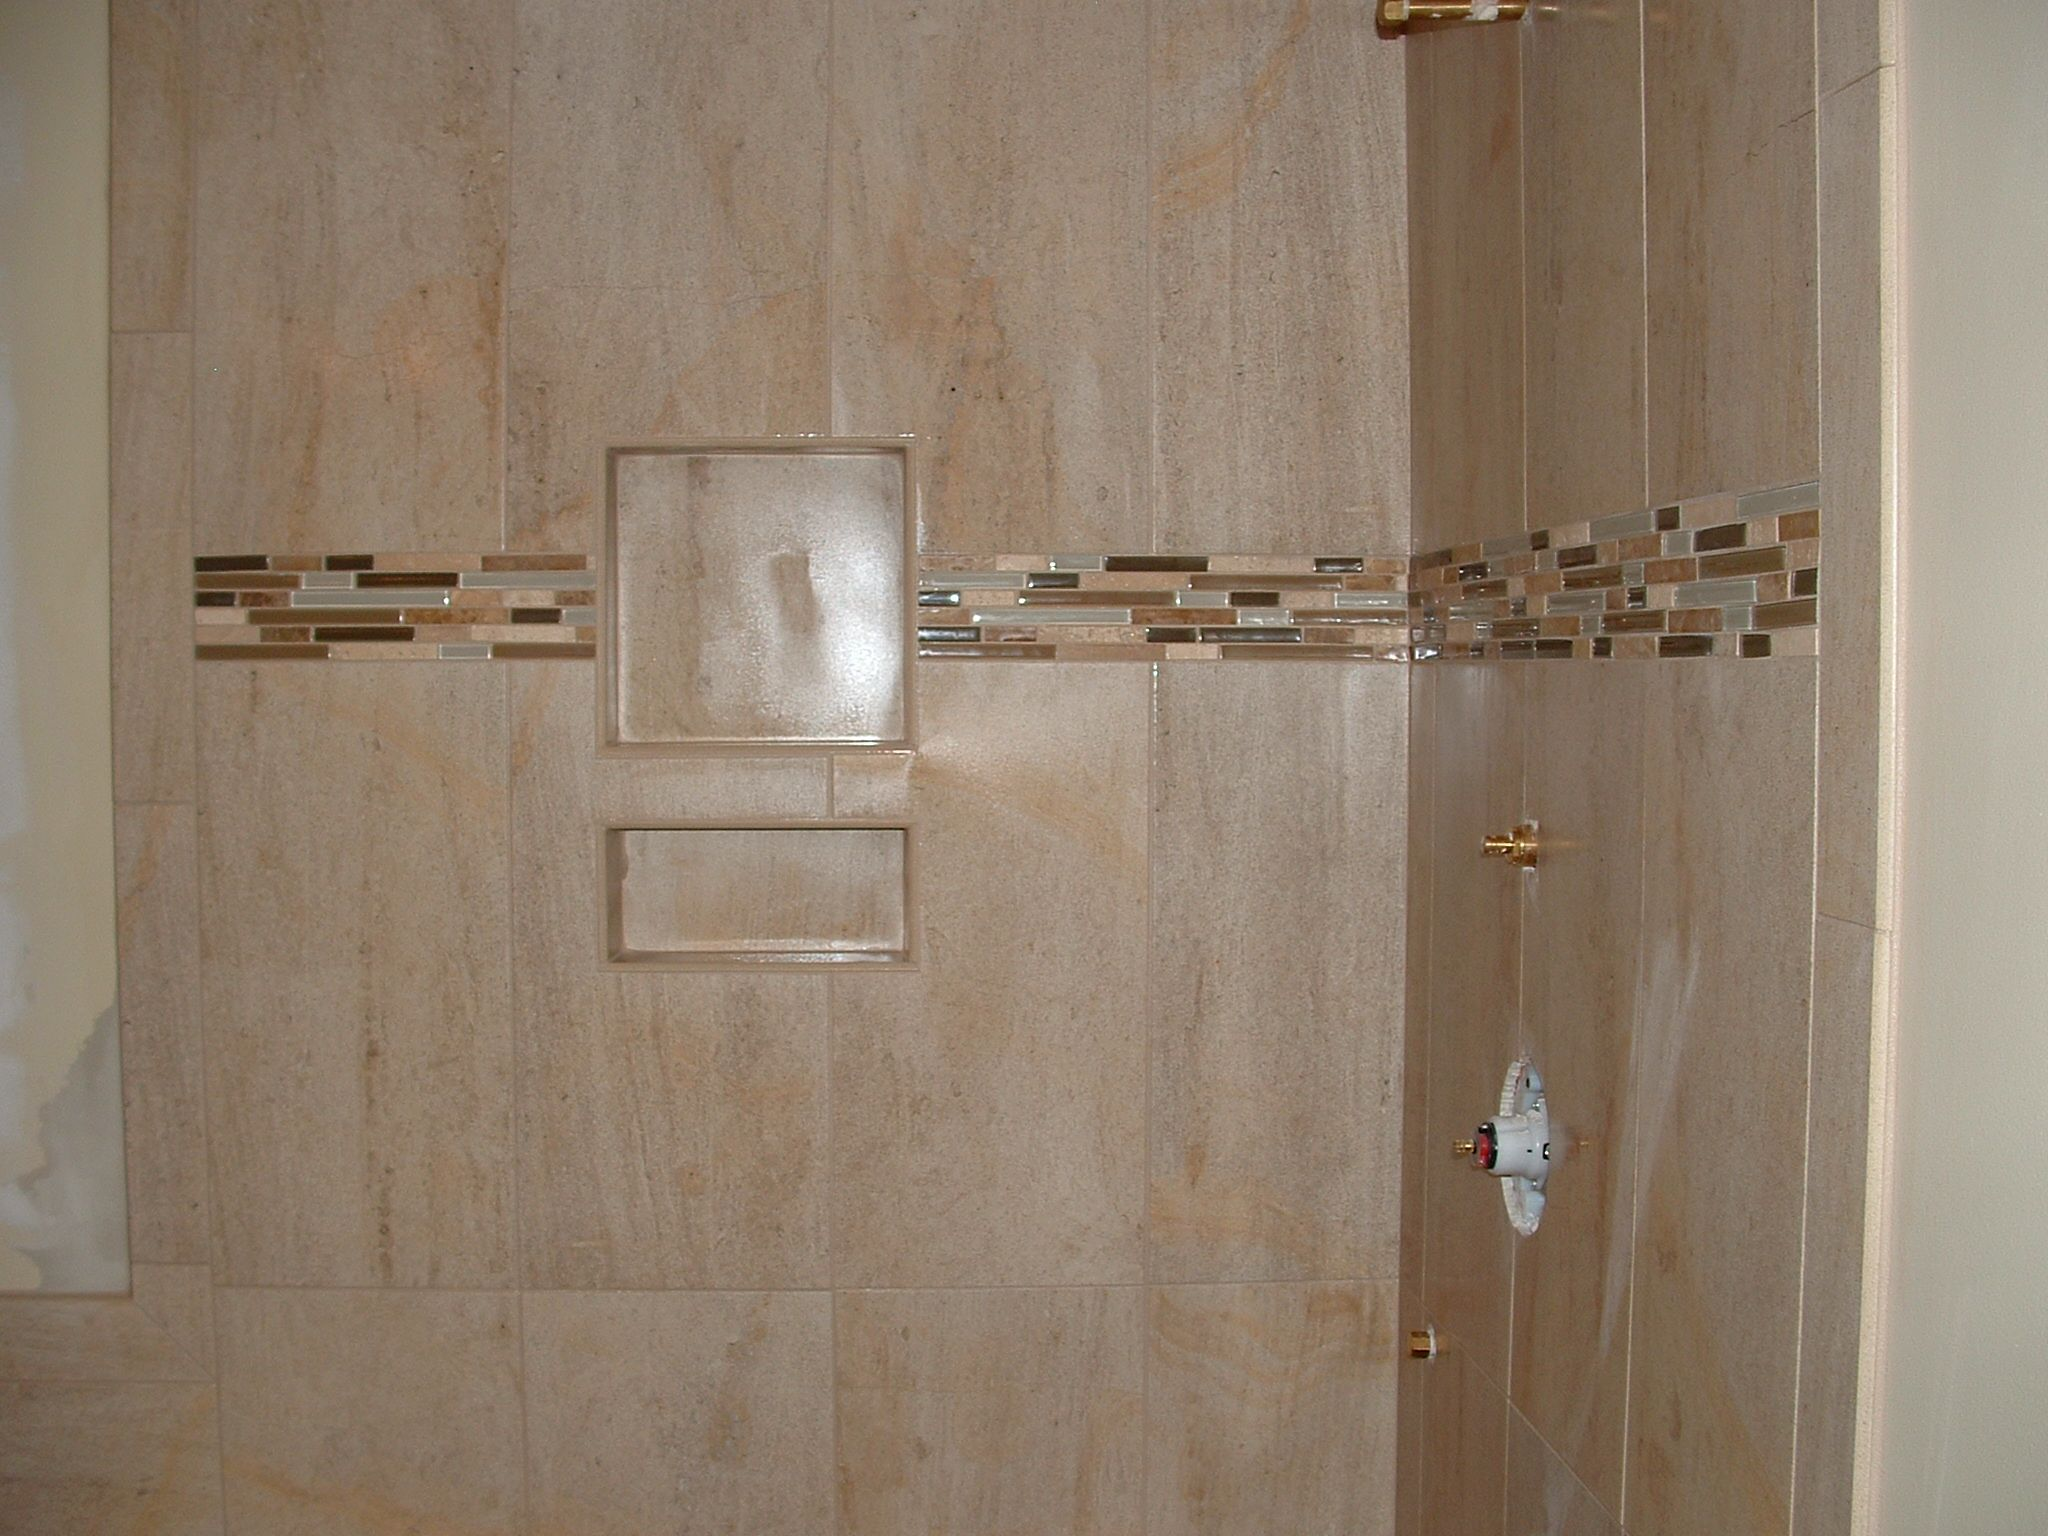 Mosaic Tile Shower: Custom Tile Shower With Mosaic Border And Recessed Shelf